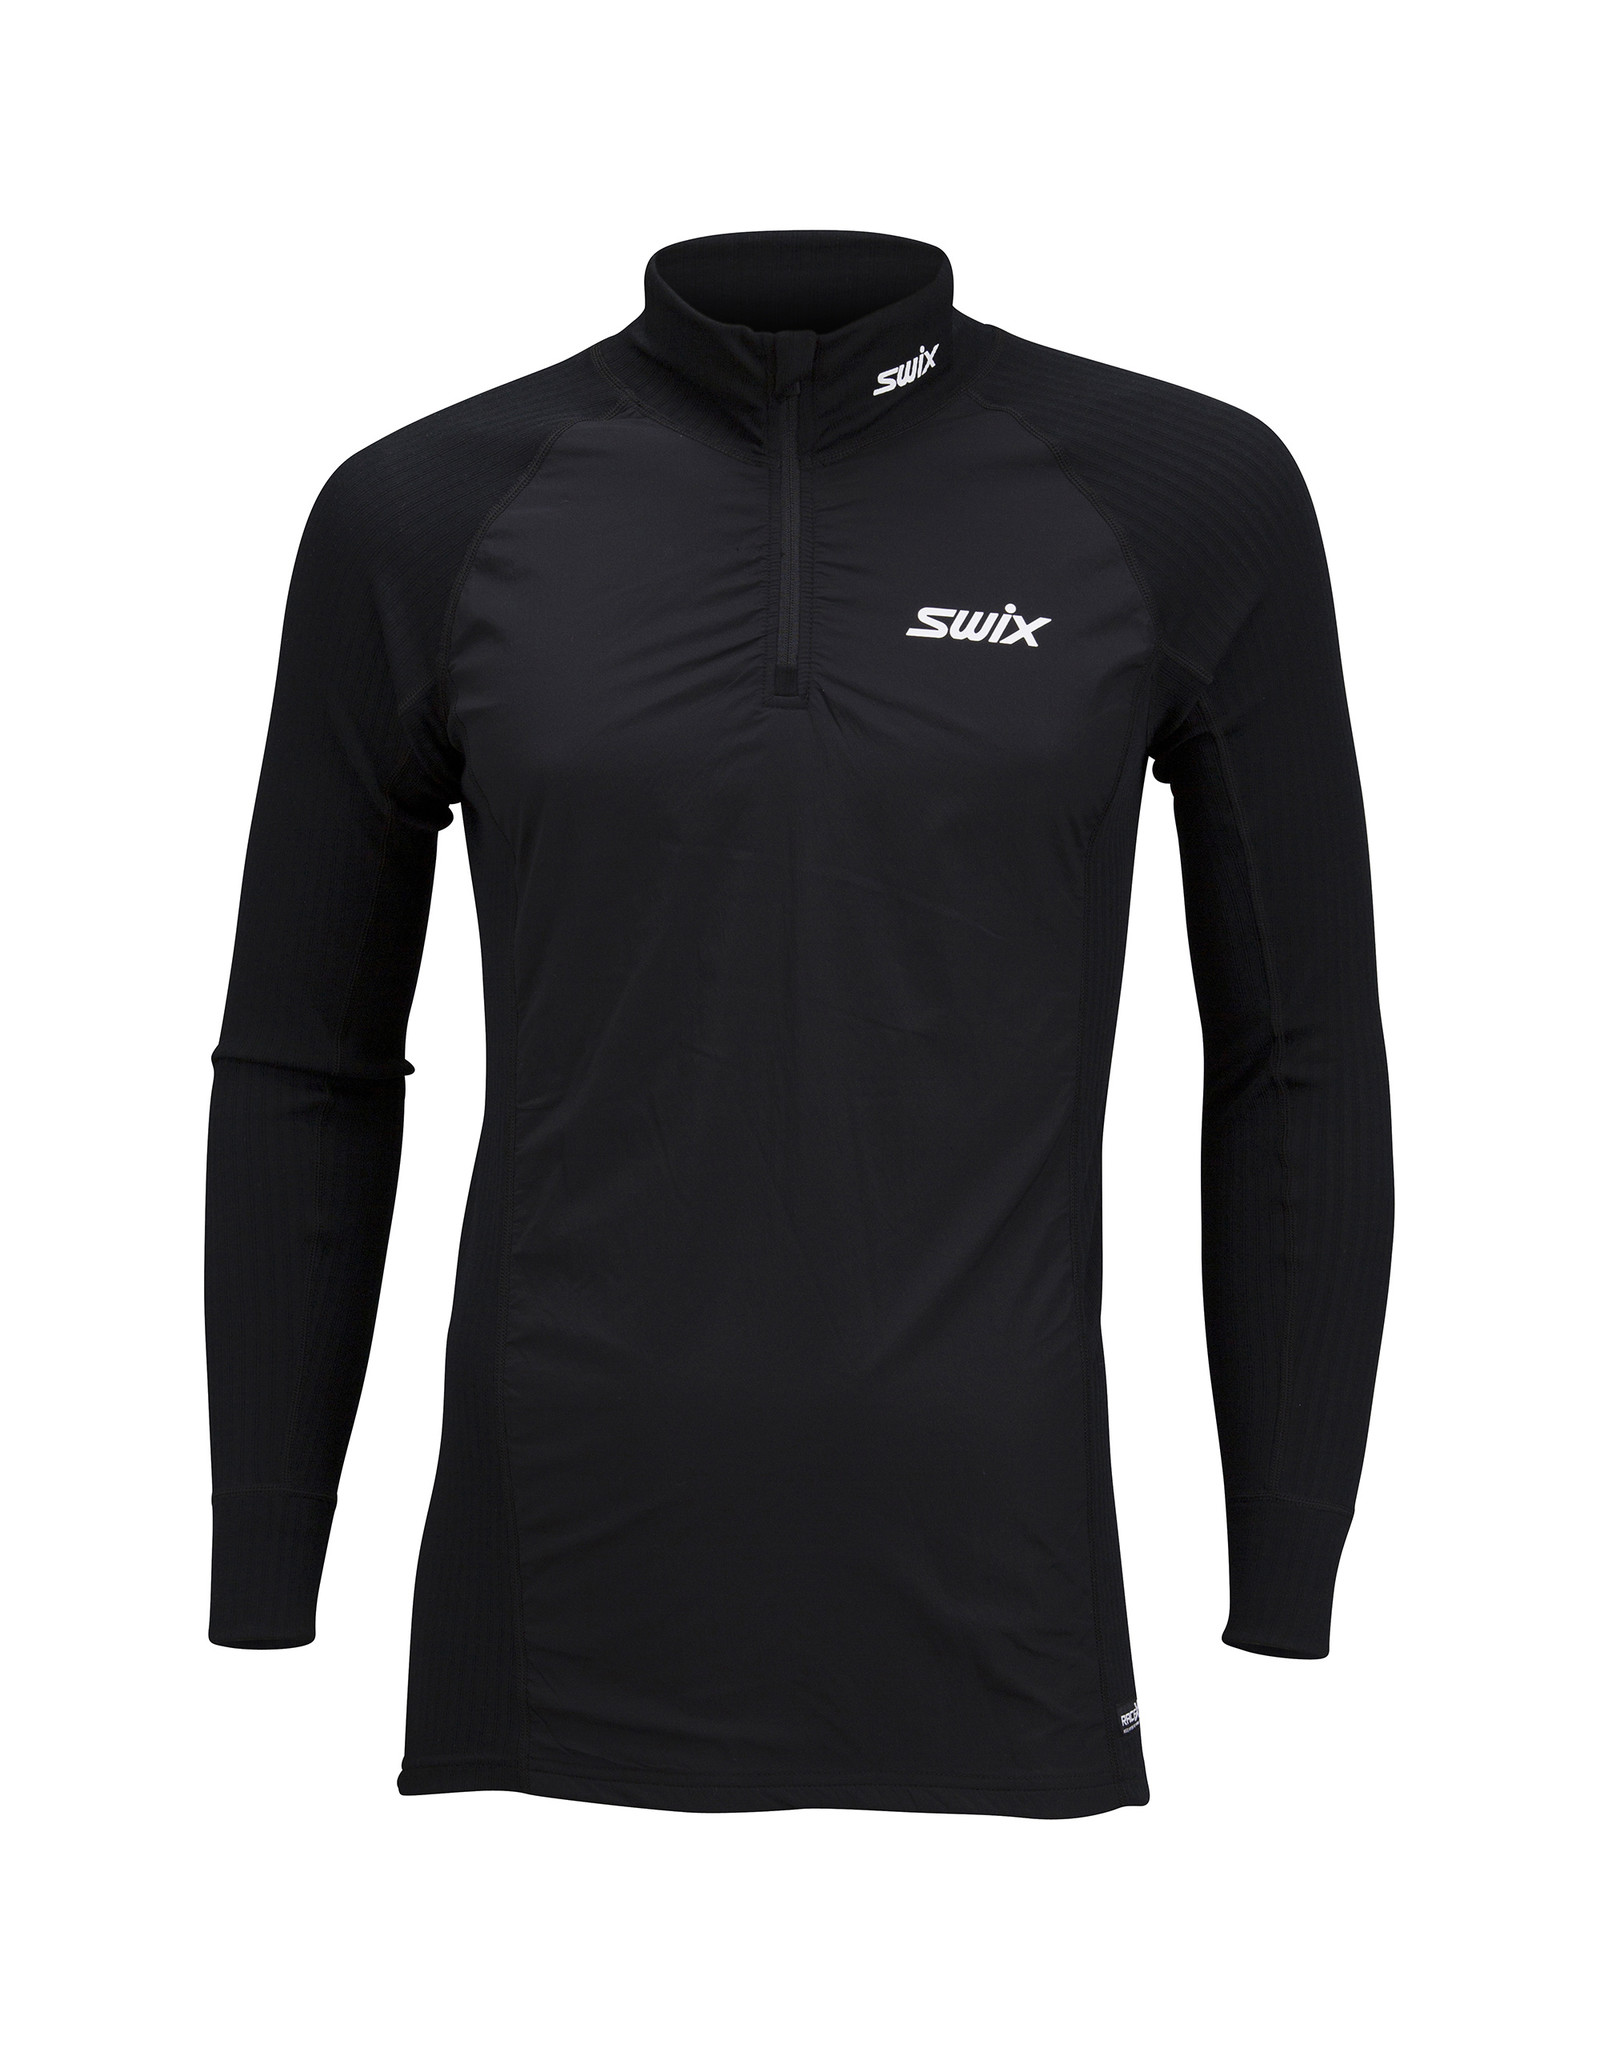 Swix Men's RaceX Bodywear Halfzip Wind